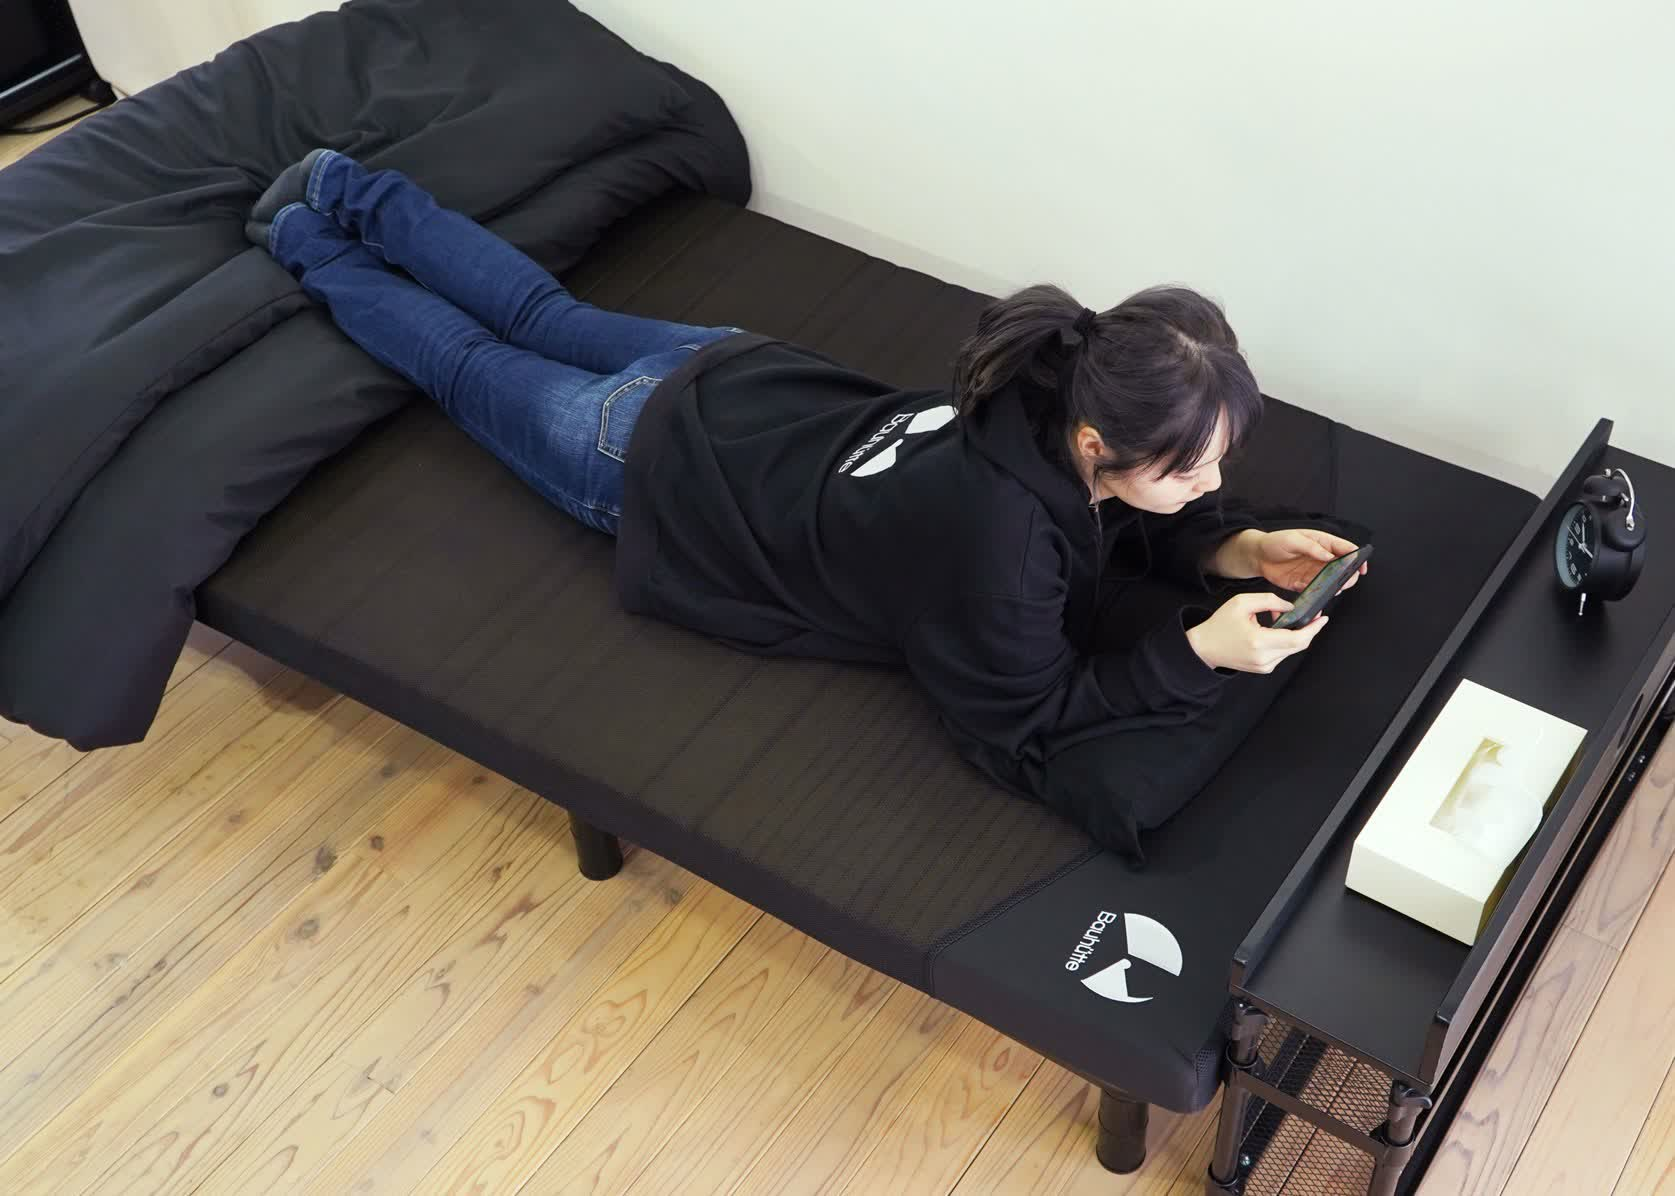 You can buy a 'Gaming Mattress' in Japan that looks suspiciously like a normal mattress